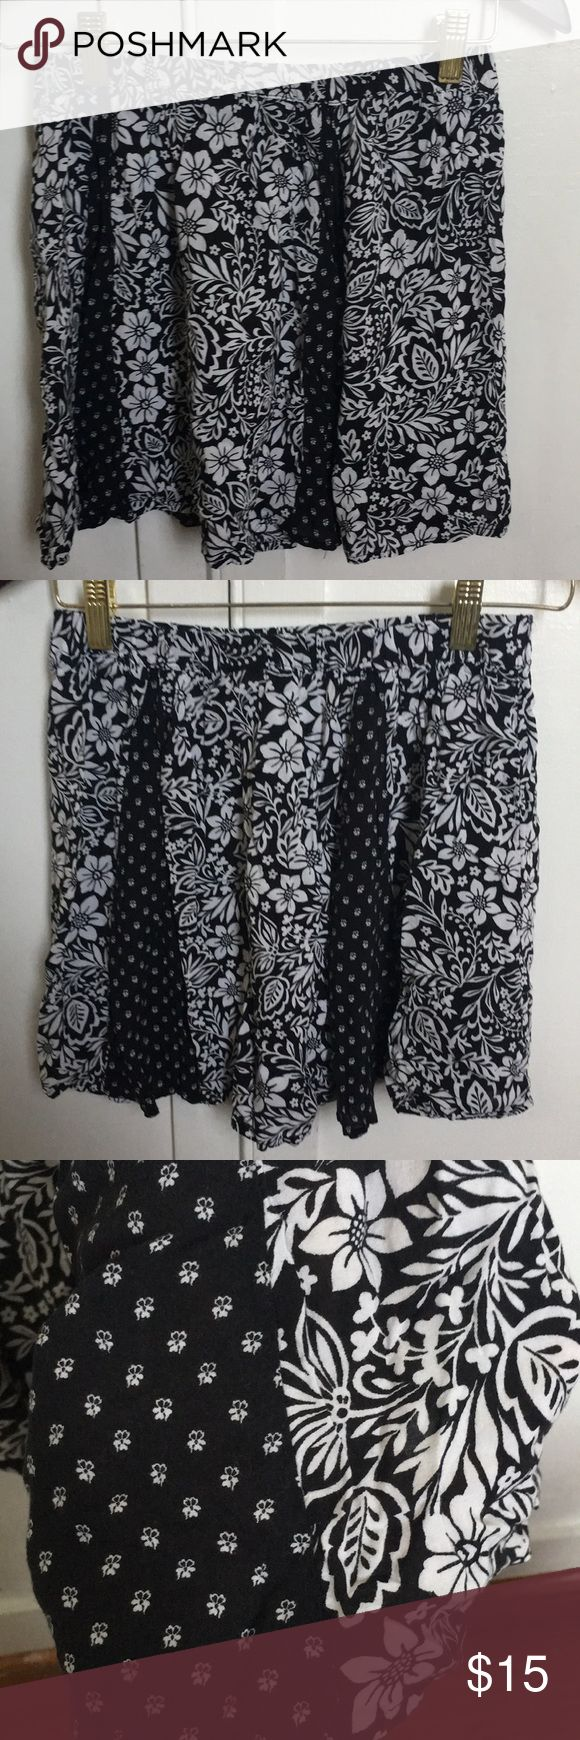 Aéropostale mini handkerchief hem skirt Airy paneled mini skirt, black and white patterned. No defects, just a few loose threads here and there. Such a cute skirt, perfect year round with leggings! Aeropostale Skirts Mini